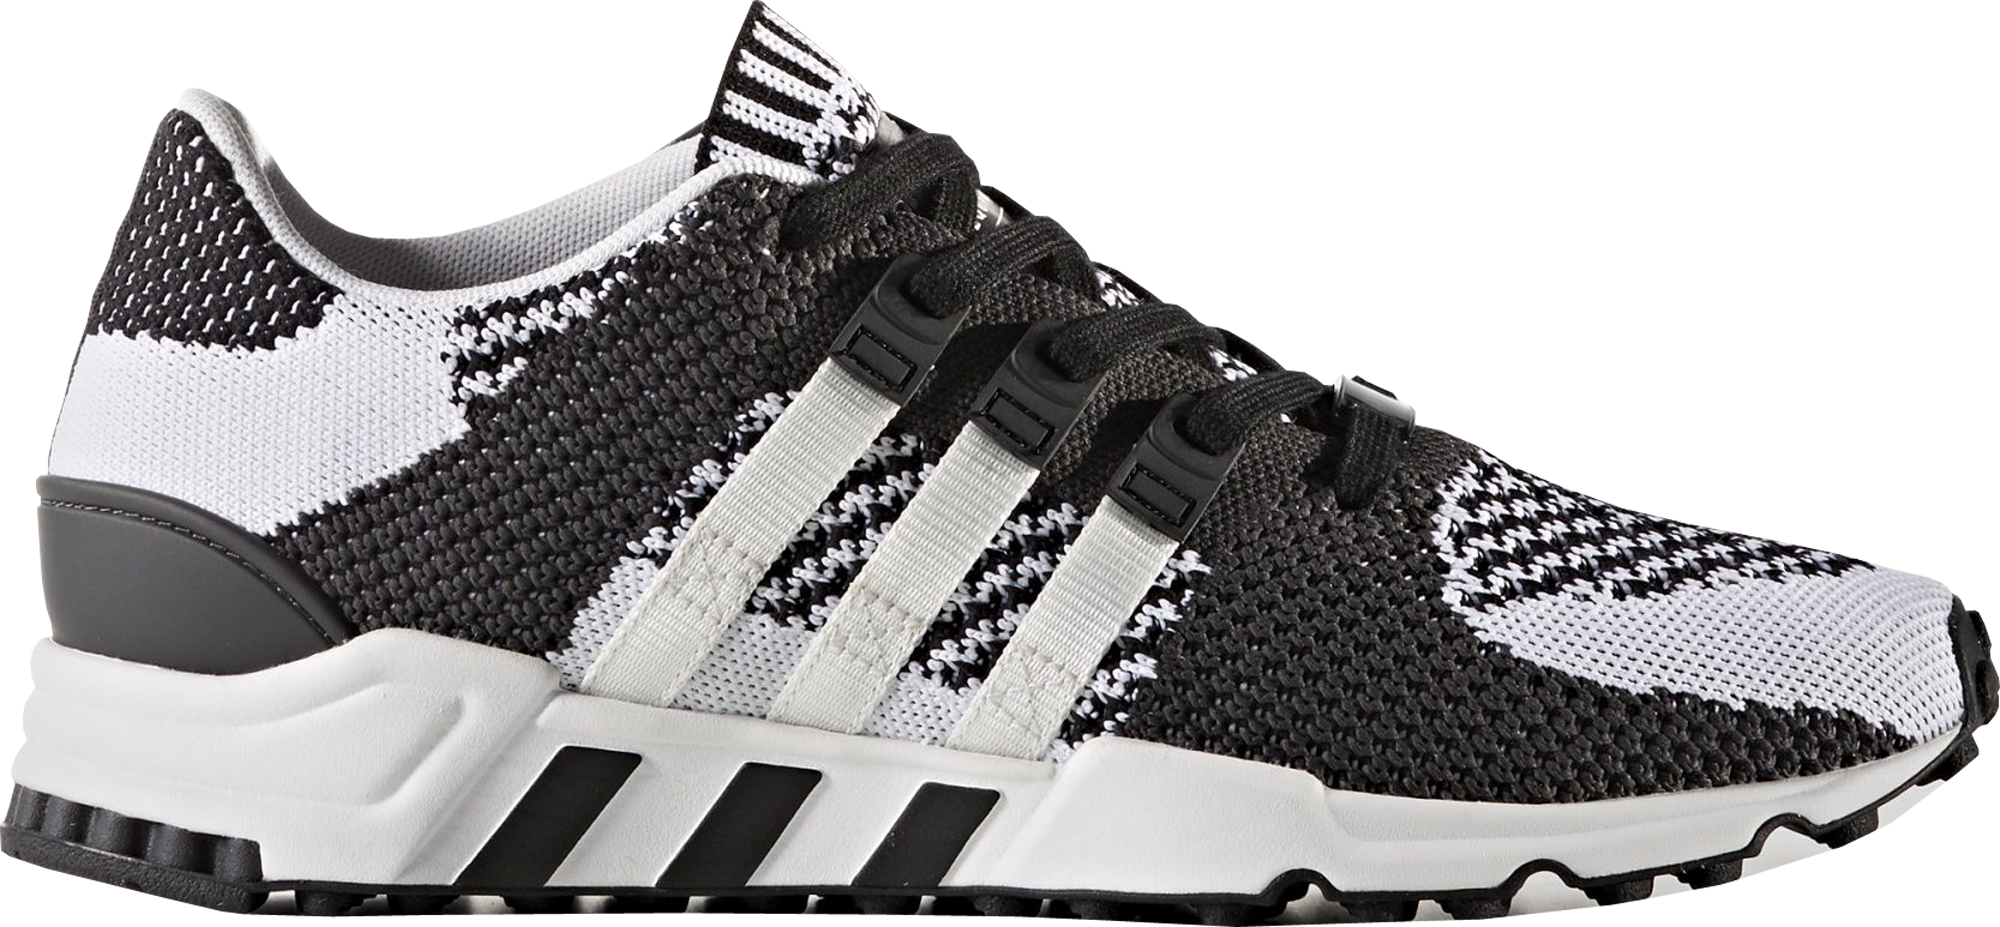 News White Stockx Rf Primeknit Adidas Support Black Eqt gyYfb6v7